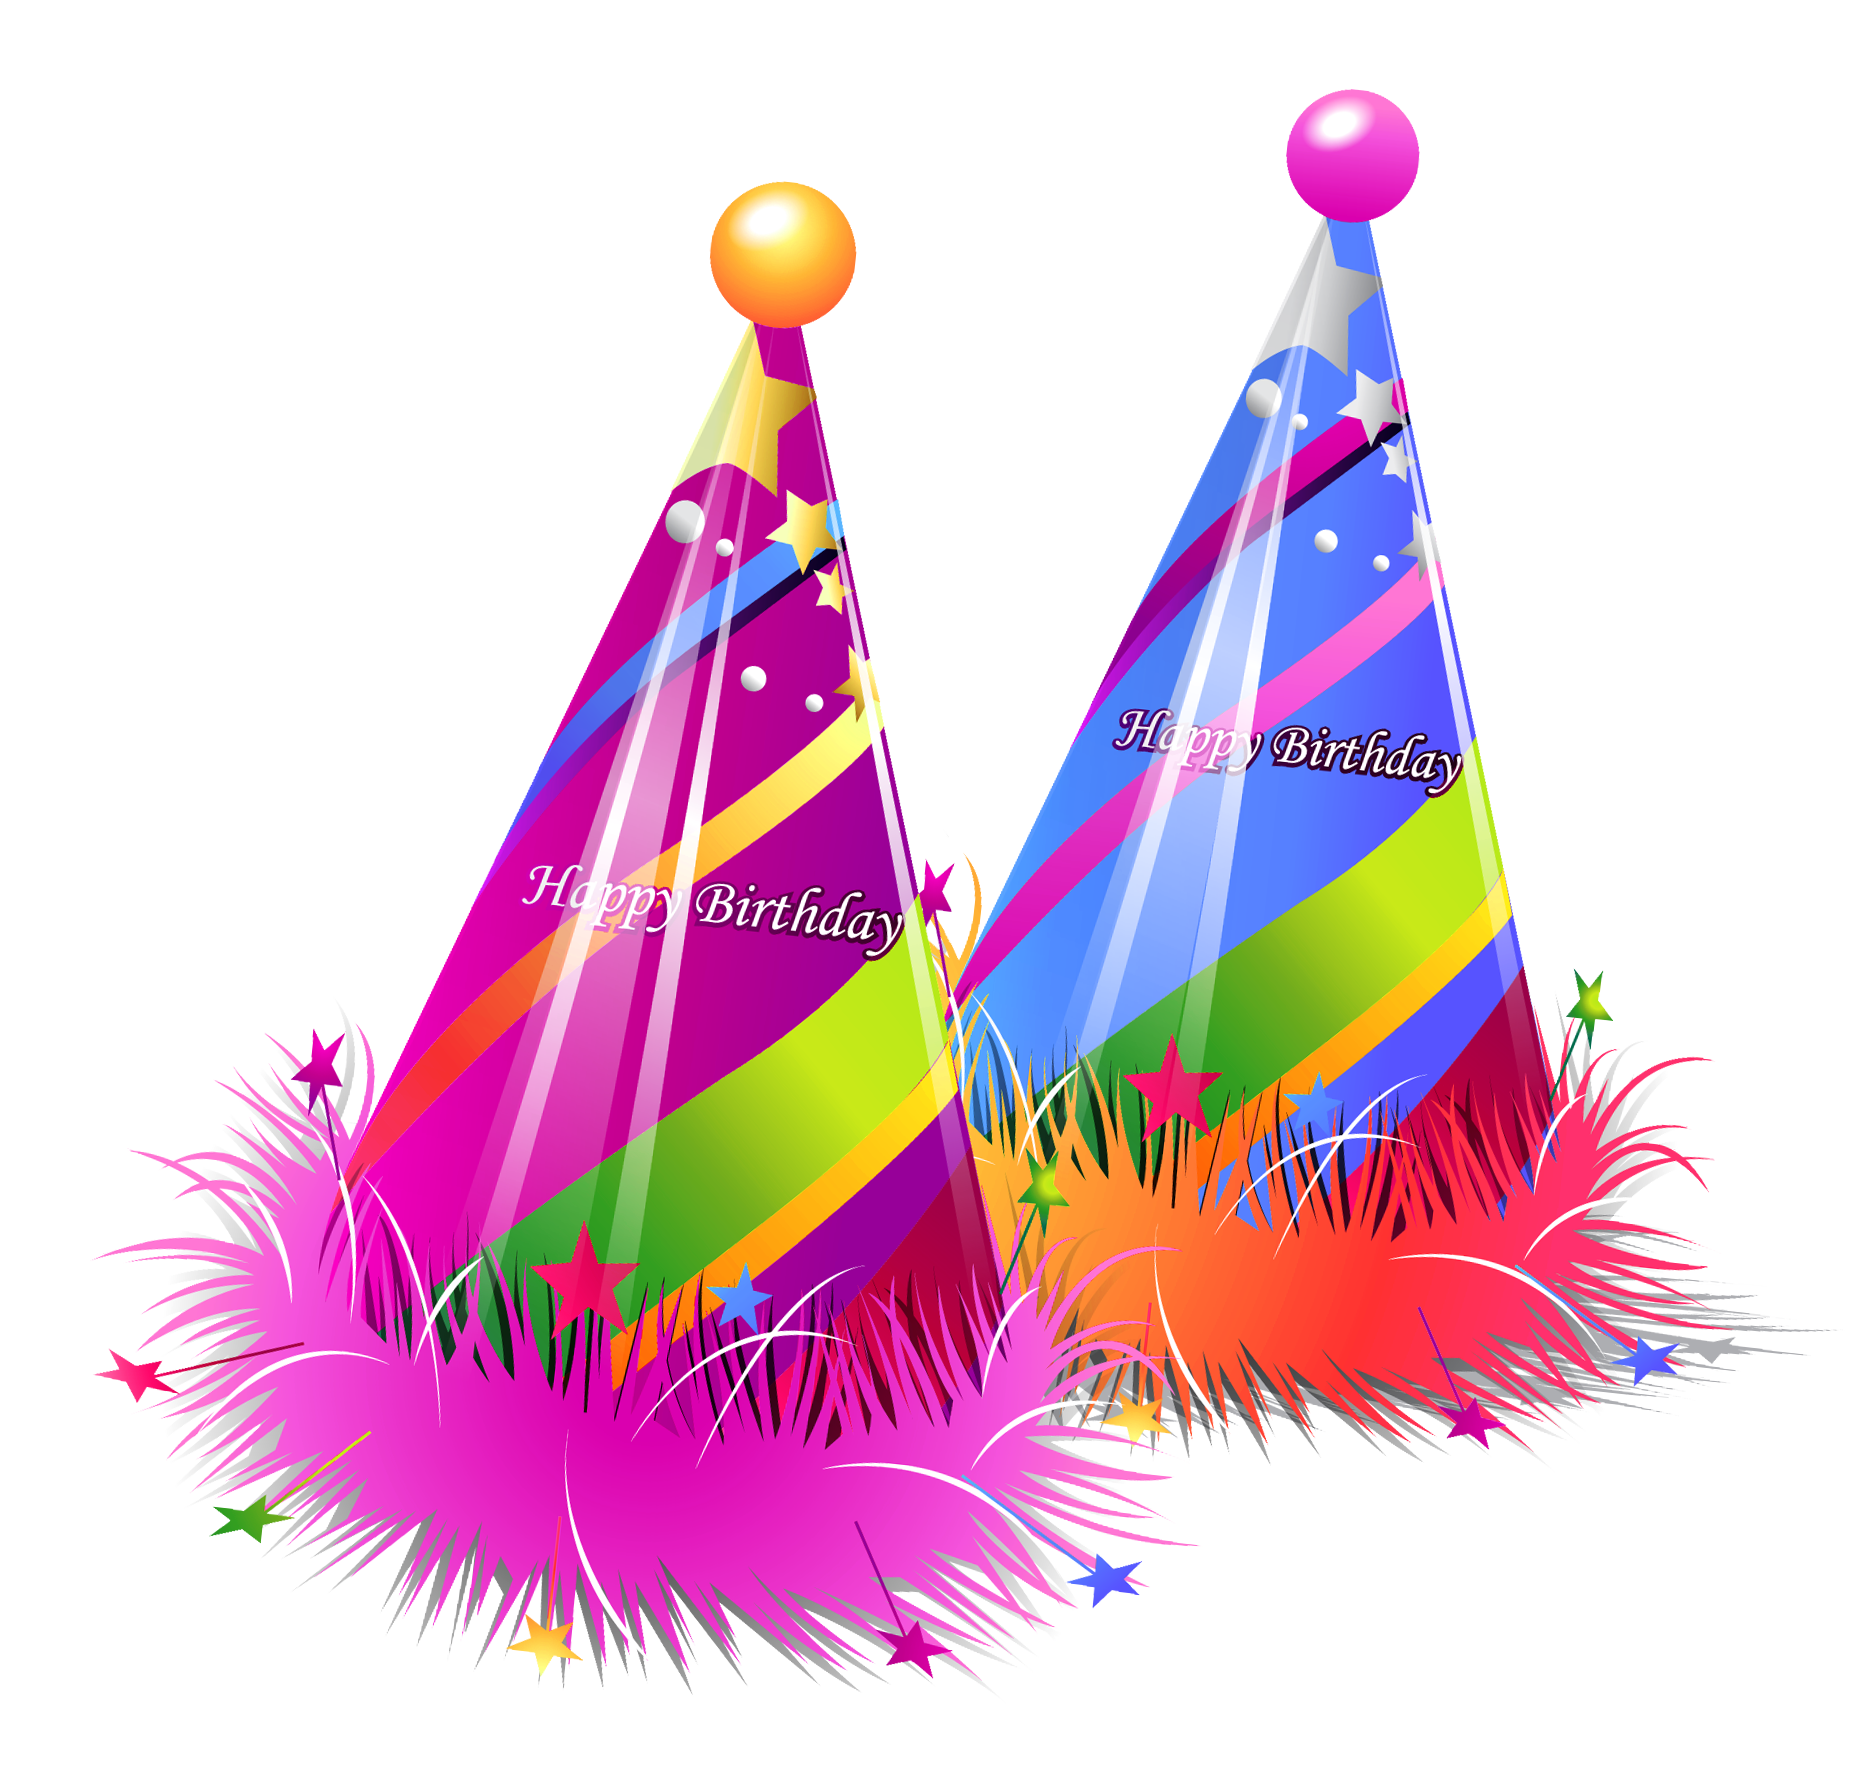 Gifts clipart birthday accessory. Happy party hats transparent